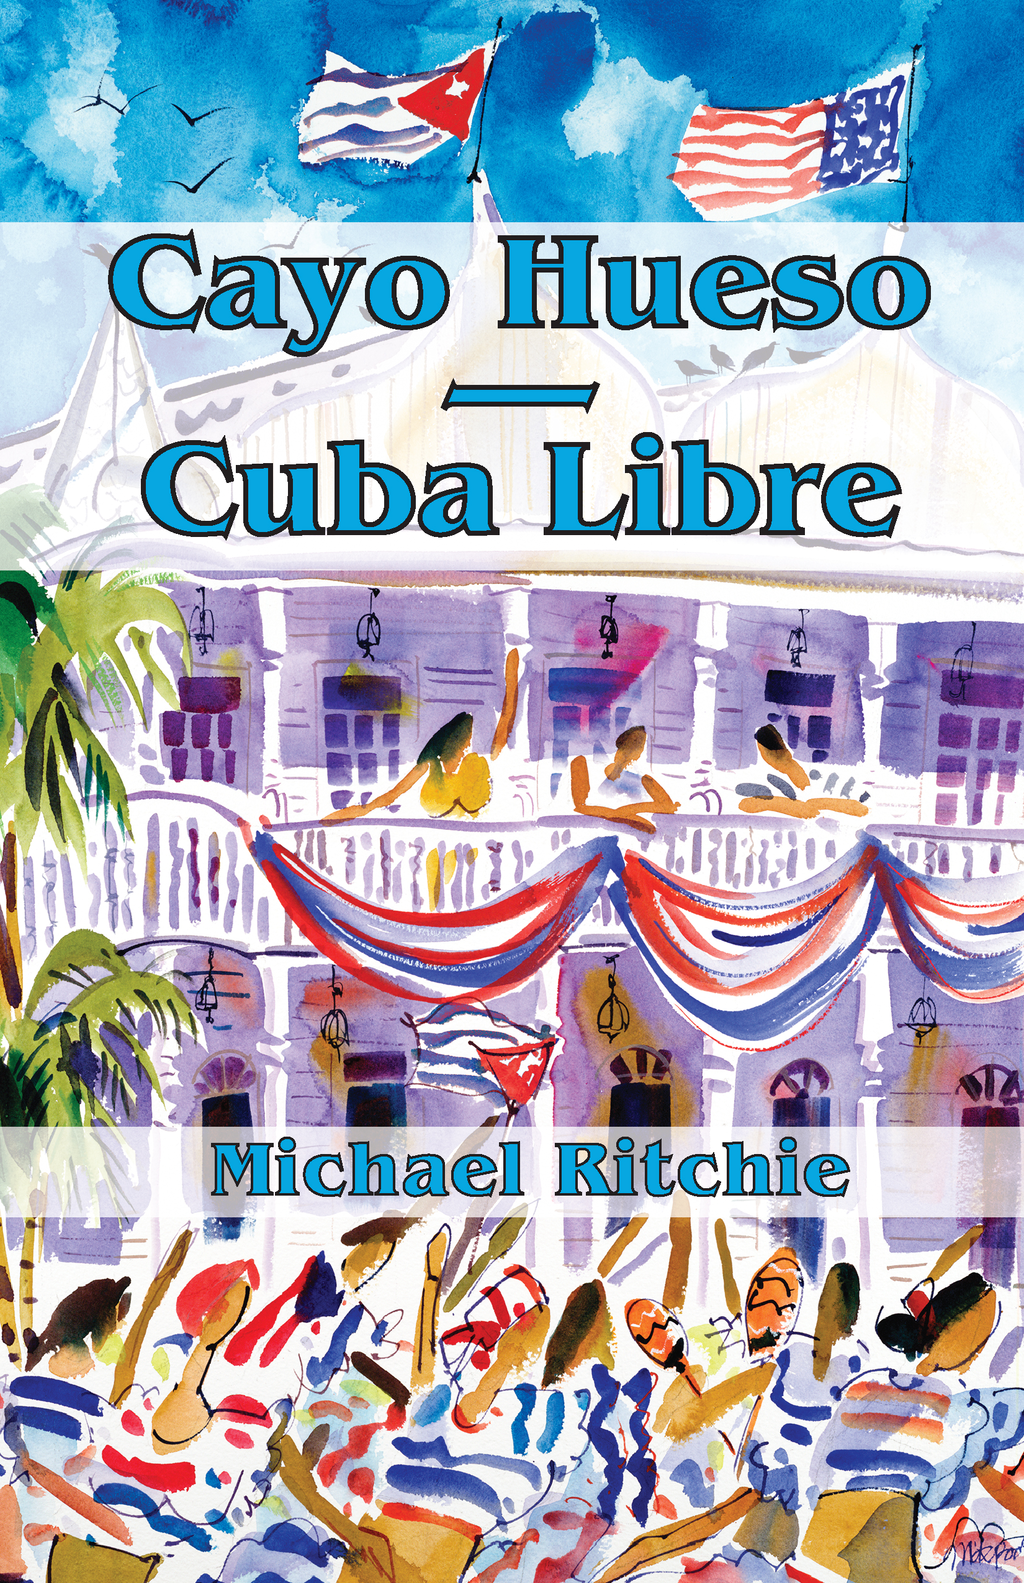 Cayo Hueso Cuba Libre: a political thriller By: Michael Ritchie